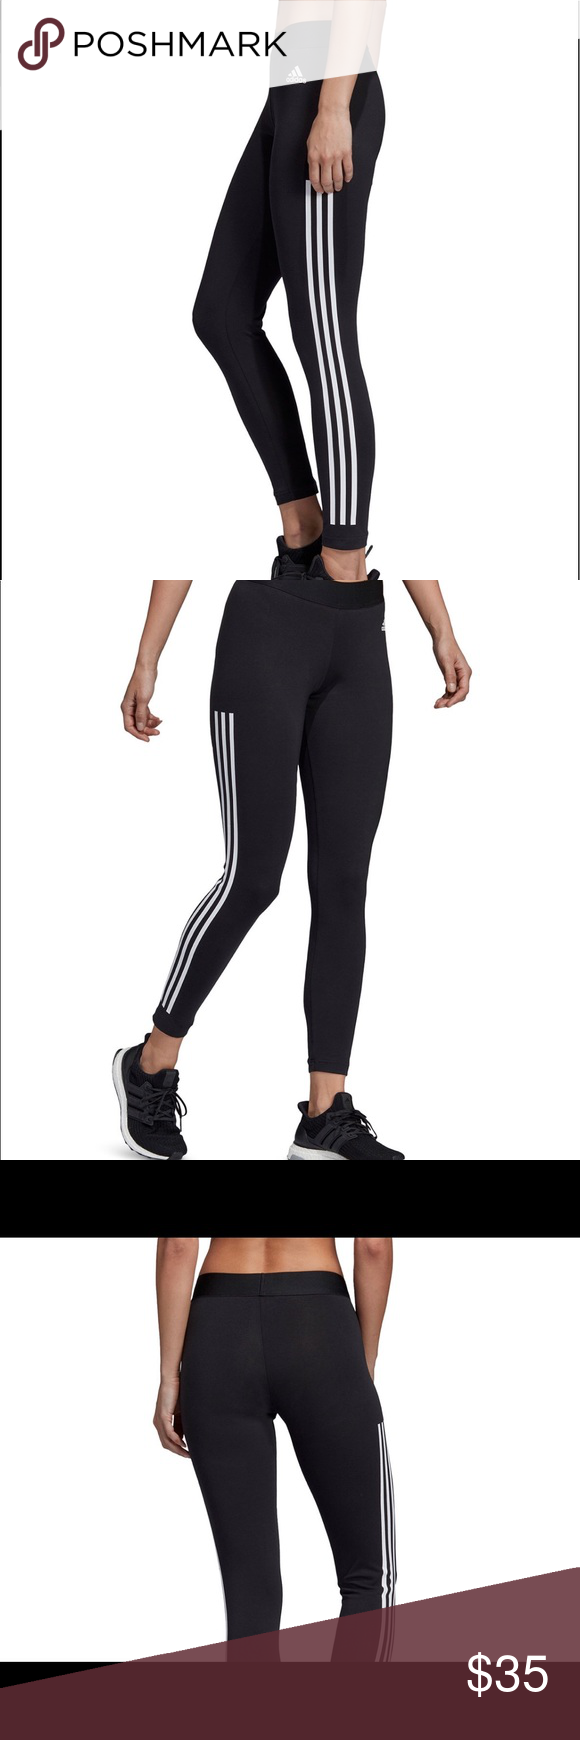 NWT Adidas Originals 3 Stripe Leggings NWT Adidas Originals 3 Stripe Leggings  Women size Medium  Brand new with tags still attached  Excellent Condition  No Flaws Never Worn .   Athleisure •  Soft stretch jersey •  Exposed waistband; three stripes at sides •  Cotton/elastane adidas Pants Leggings #stripedleggings